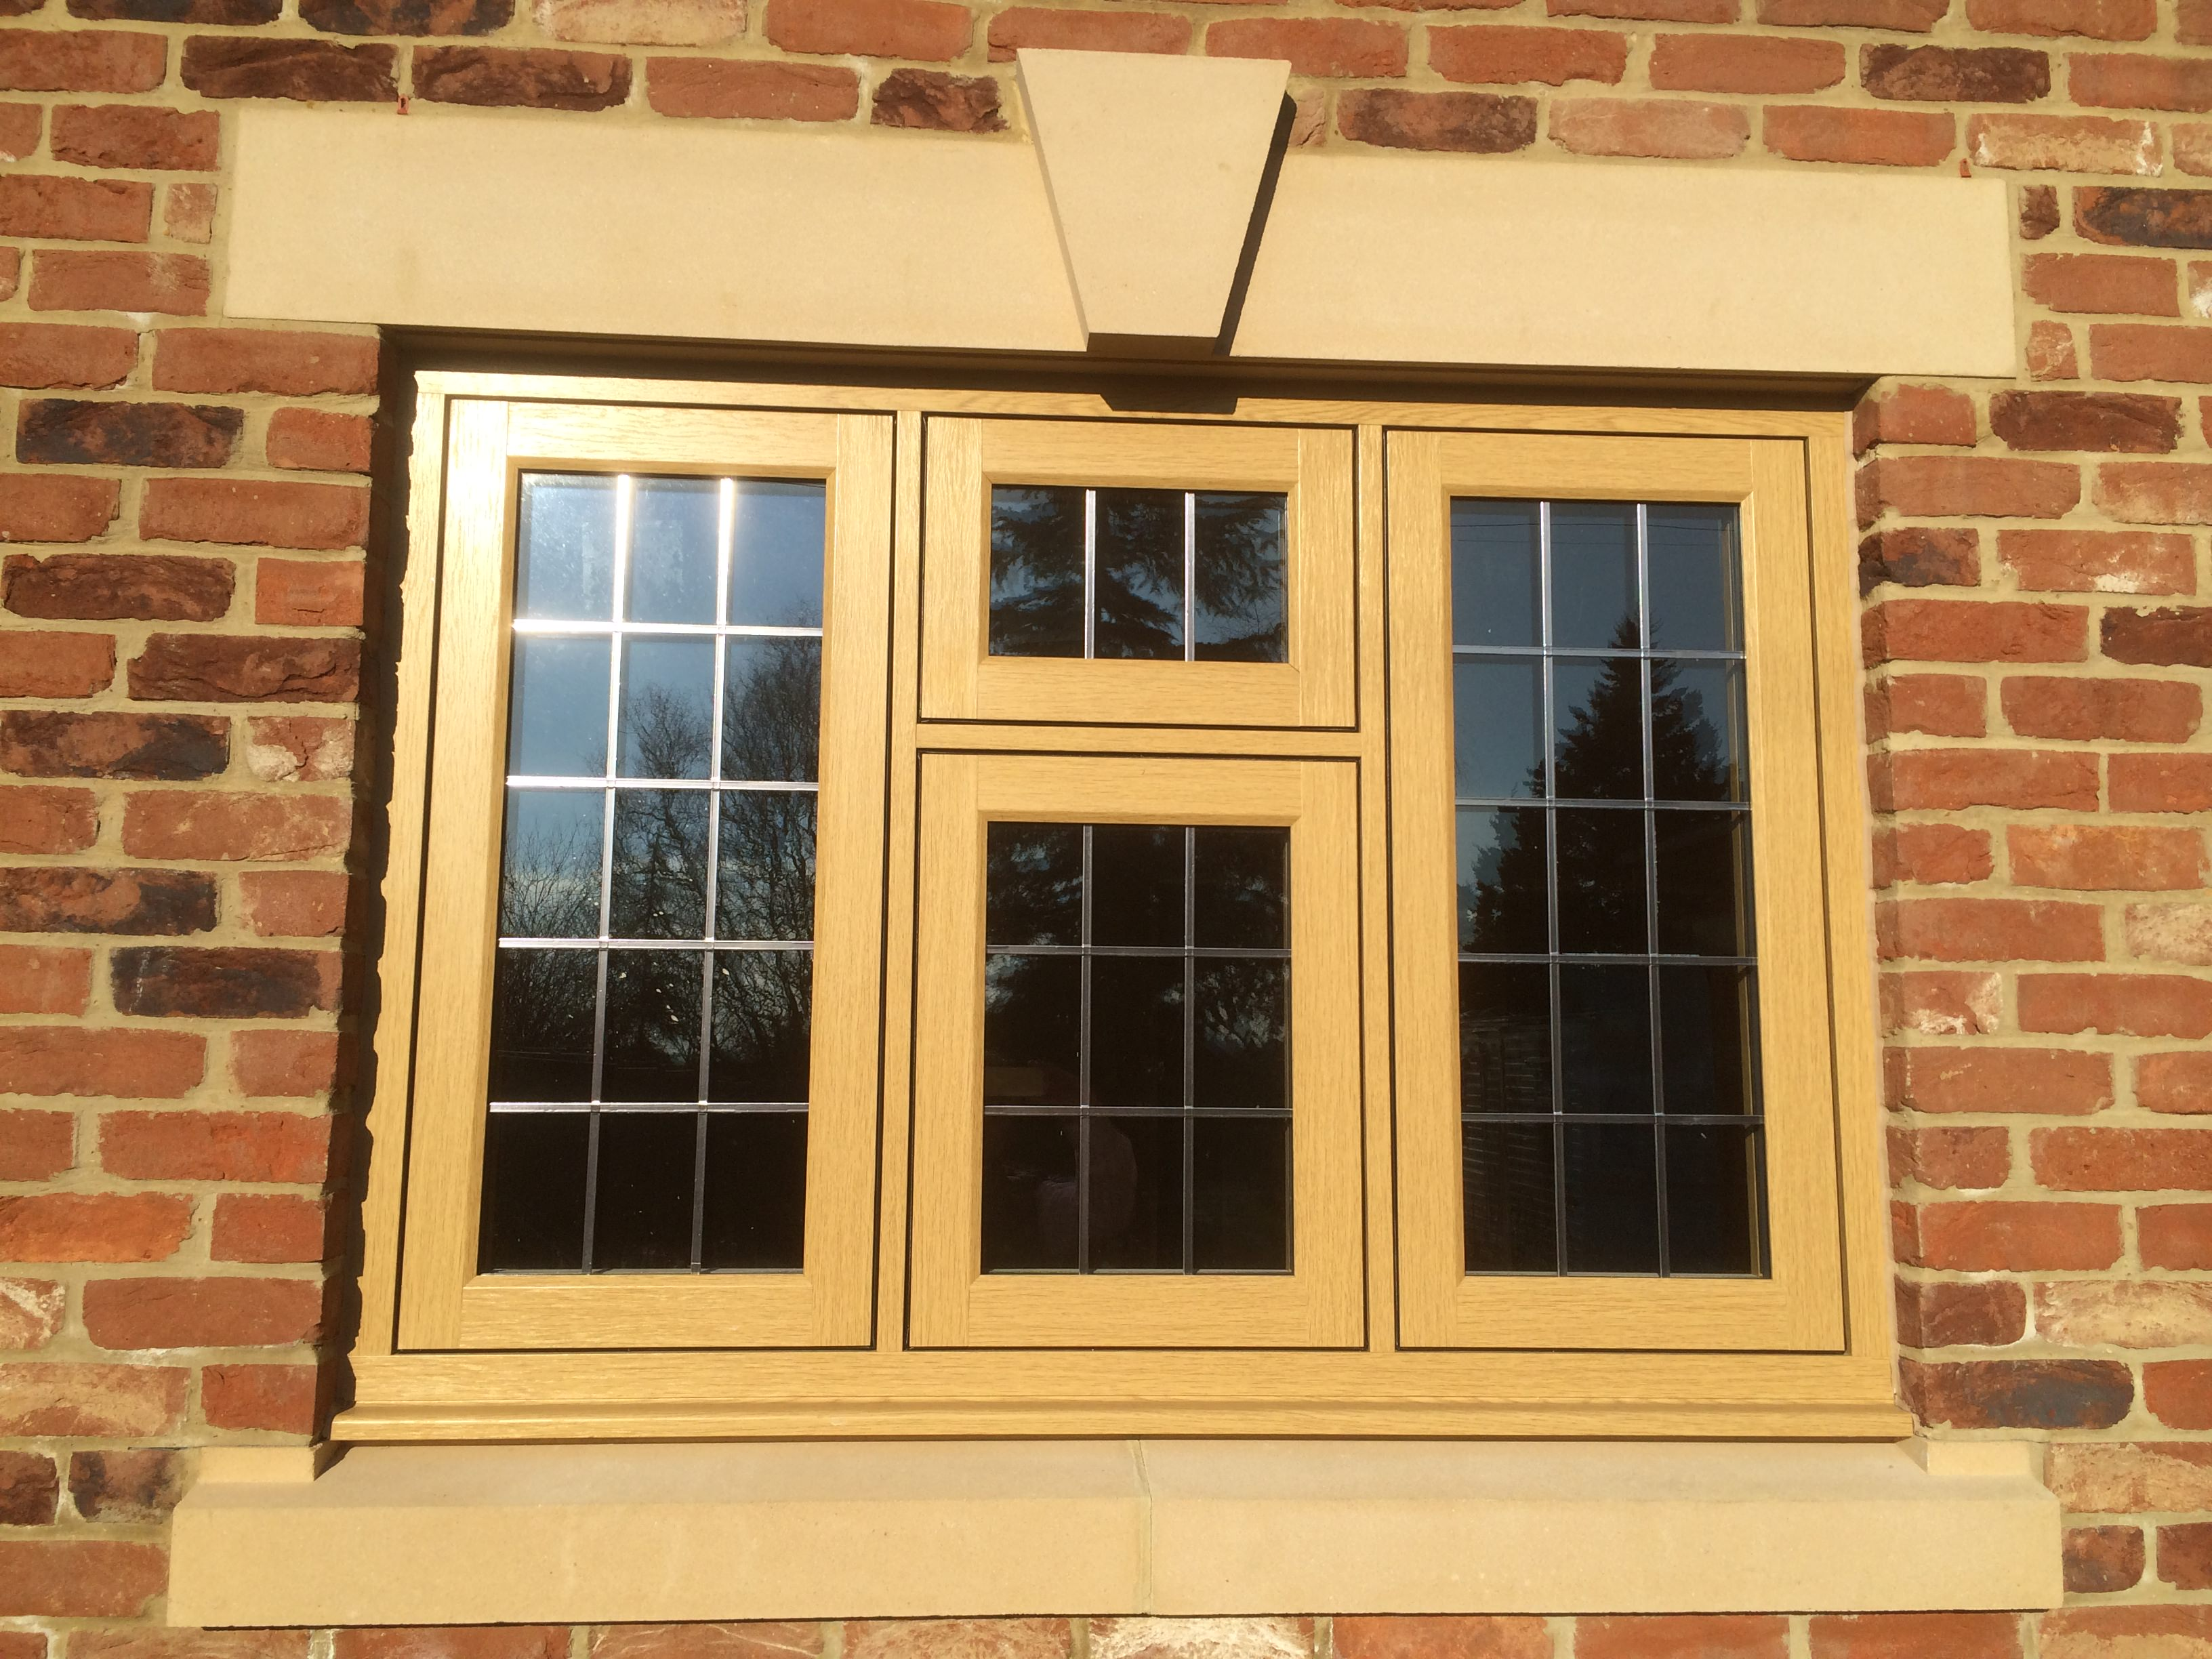 Double Glazing Product : Wooden casement windows double glazing leeds select